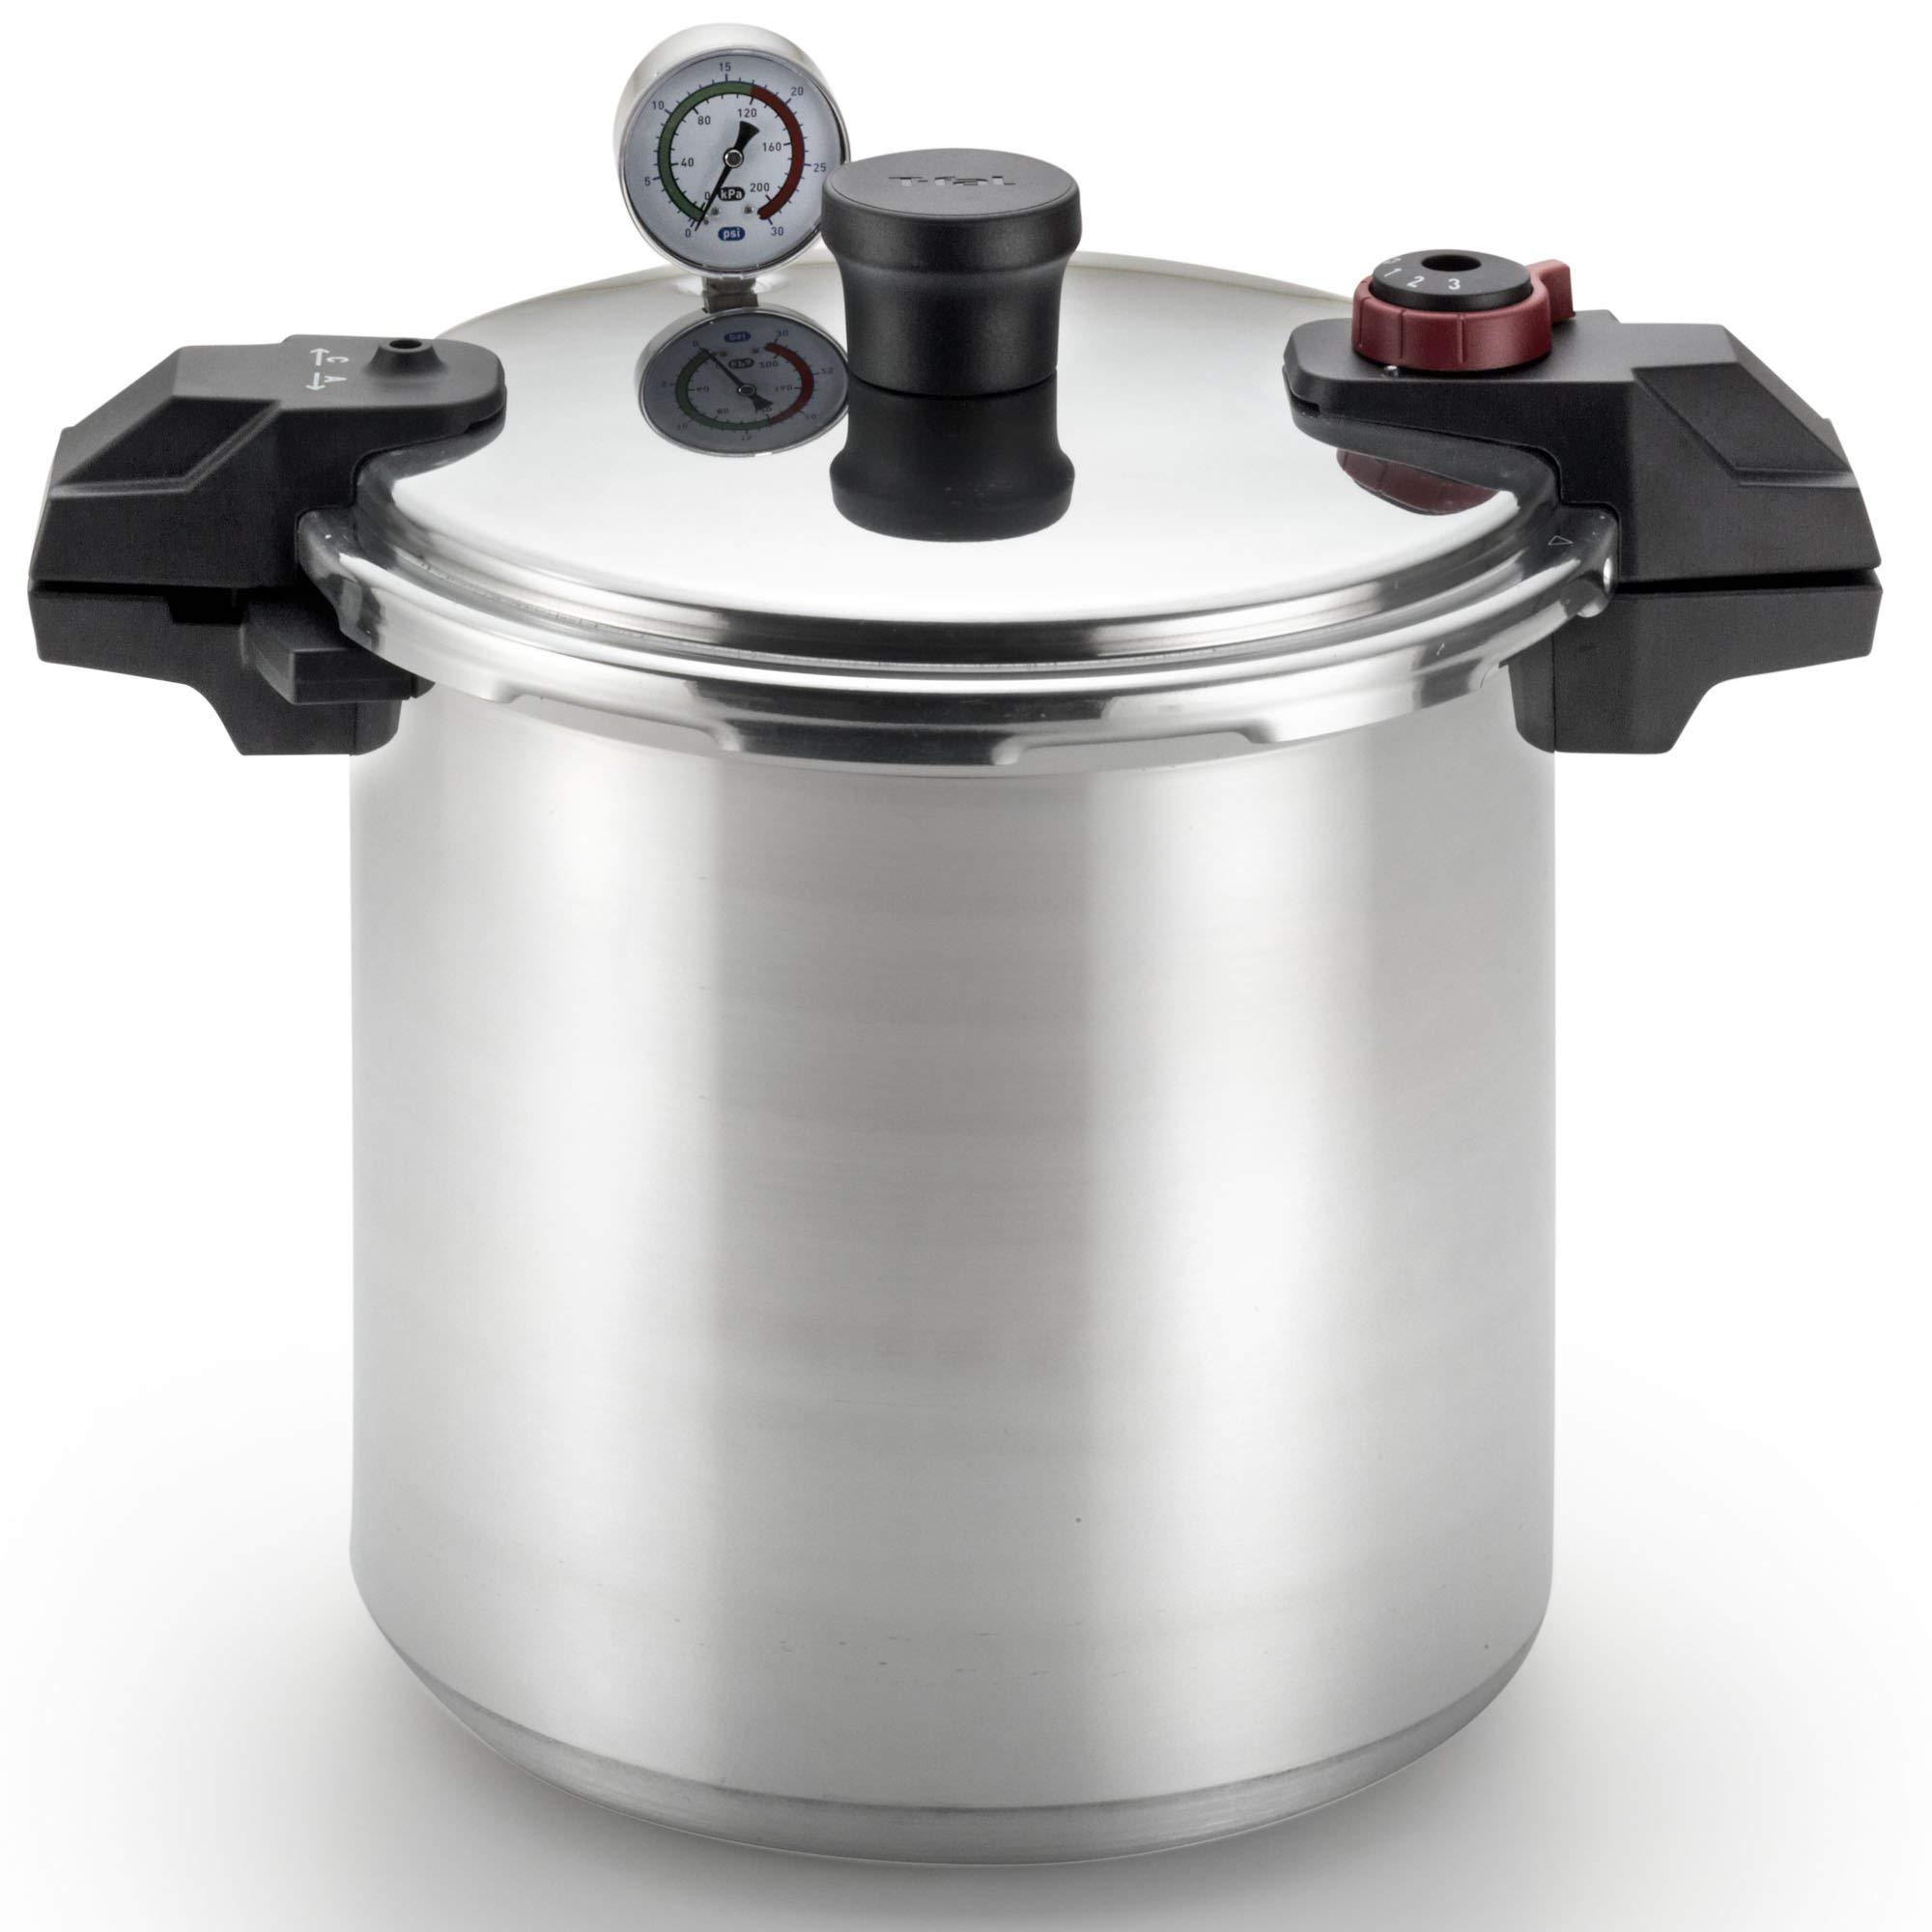 T-fal Pressure Cooker, Pressure Canner with Pressure Control, 3 PSI Settings, 22 Quart, Silver (Renewed)